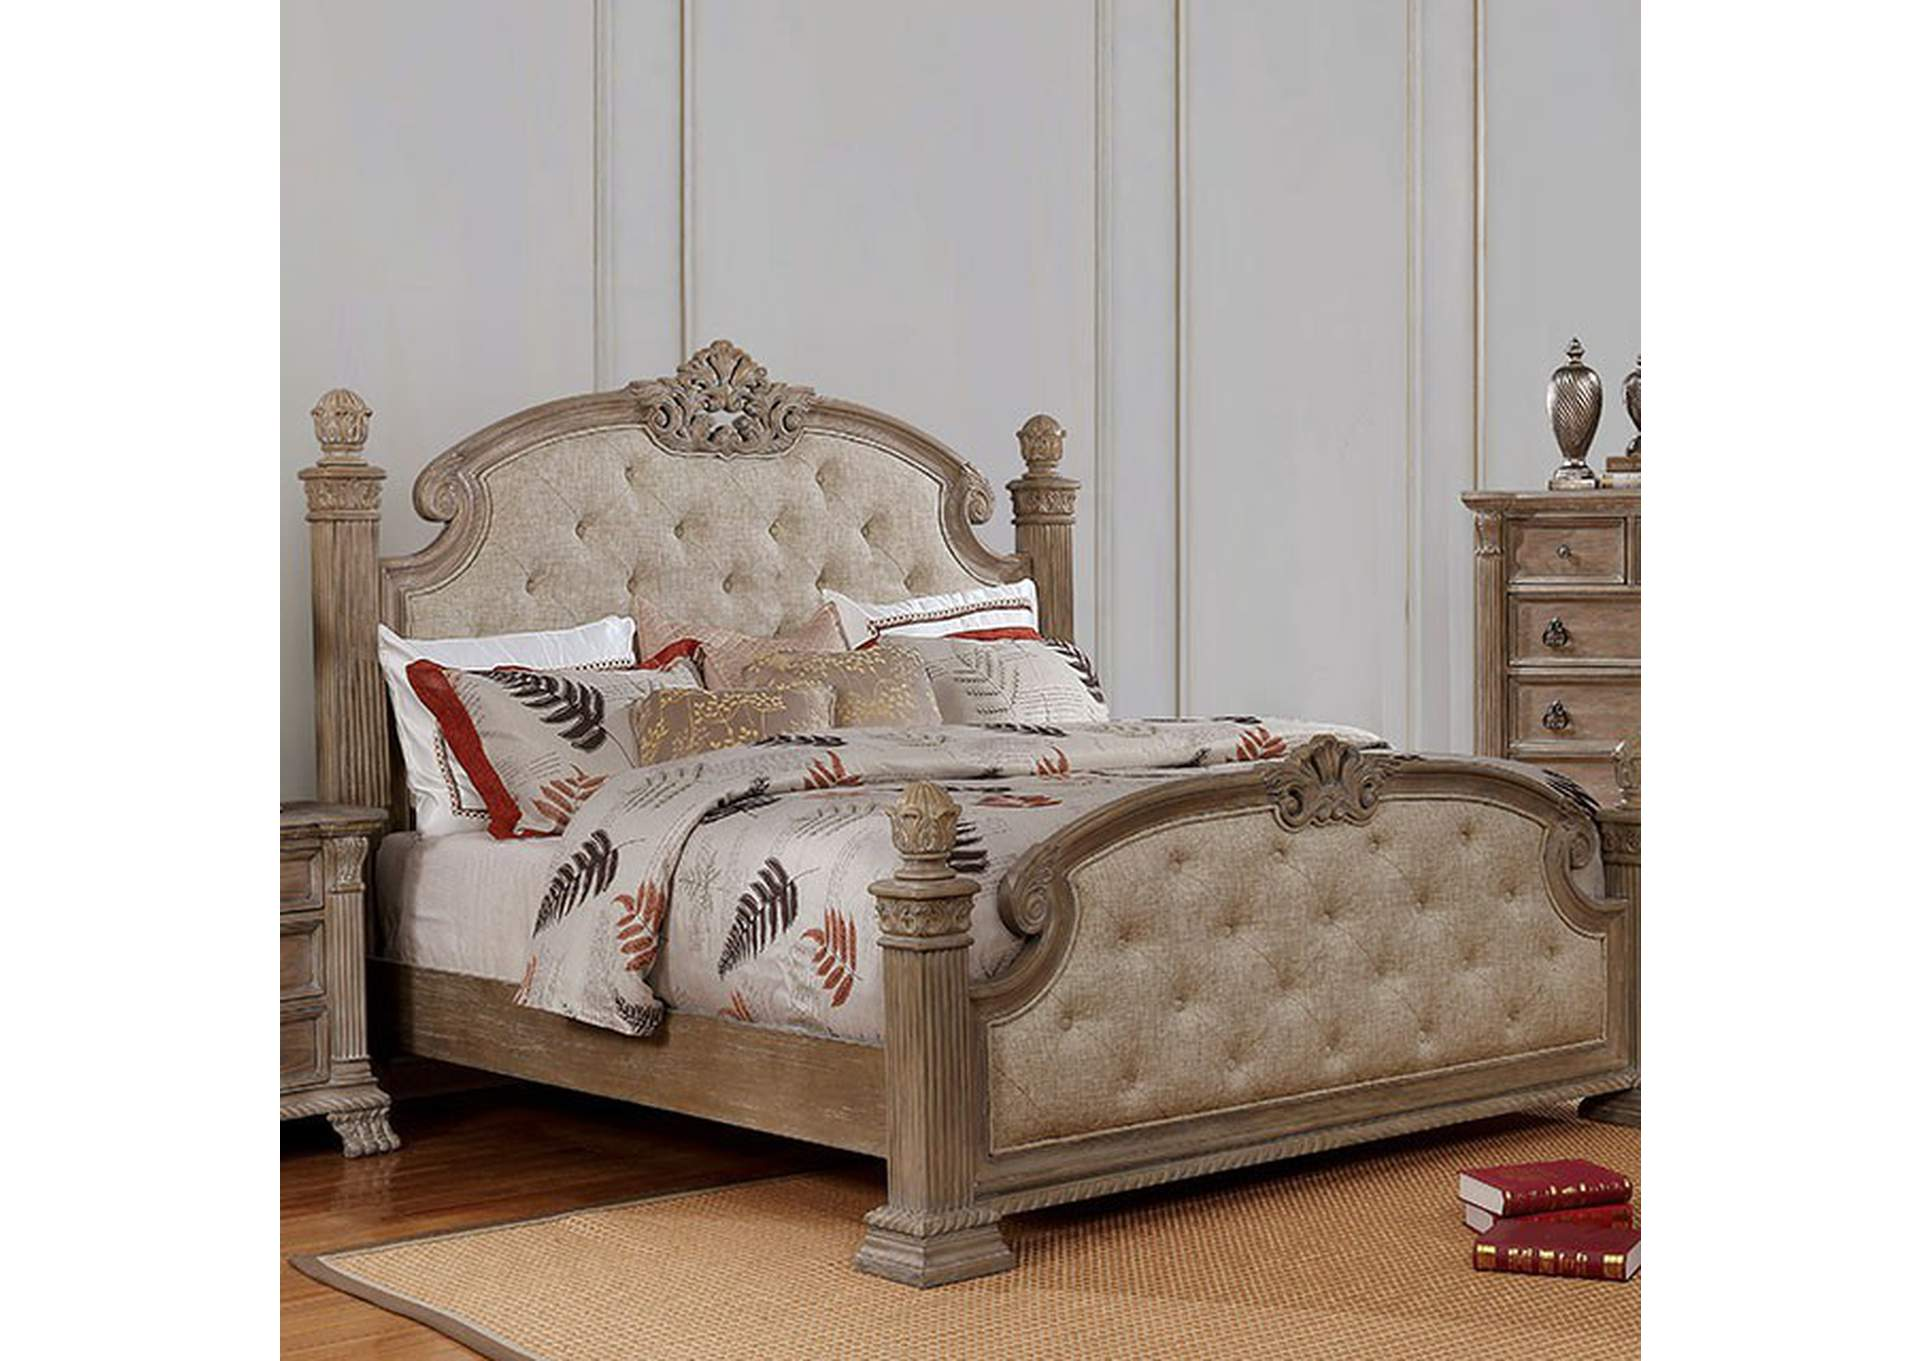 Montgomery Rustic Natural Upholstered Low Poster Eastern King Bed,Furniture of America